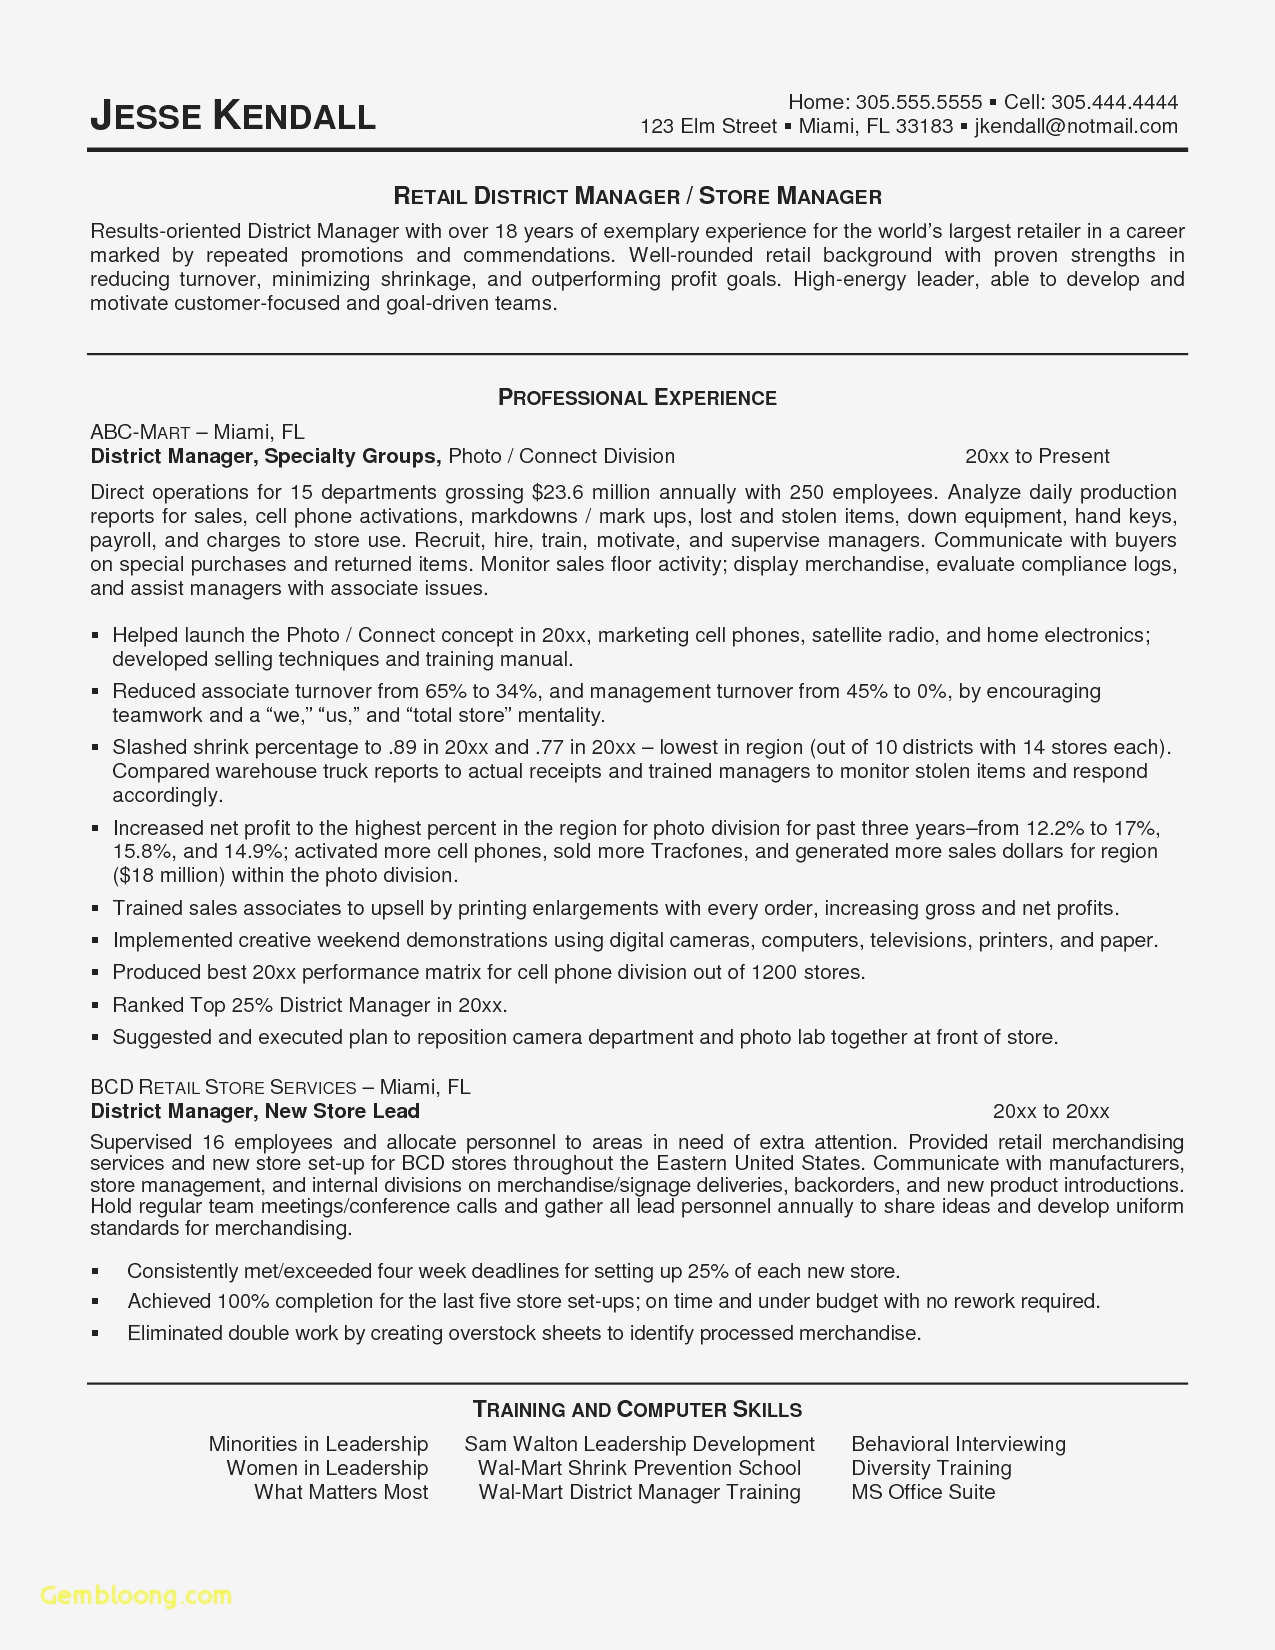 Customer Service Manager Resume Template - Retail Store Manager Sample Resume